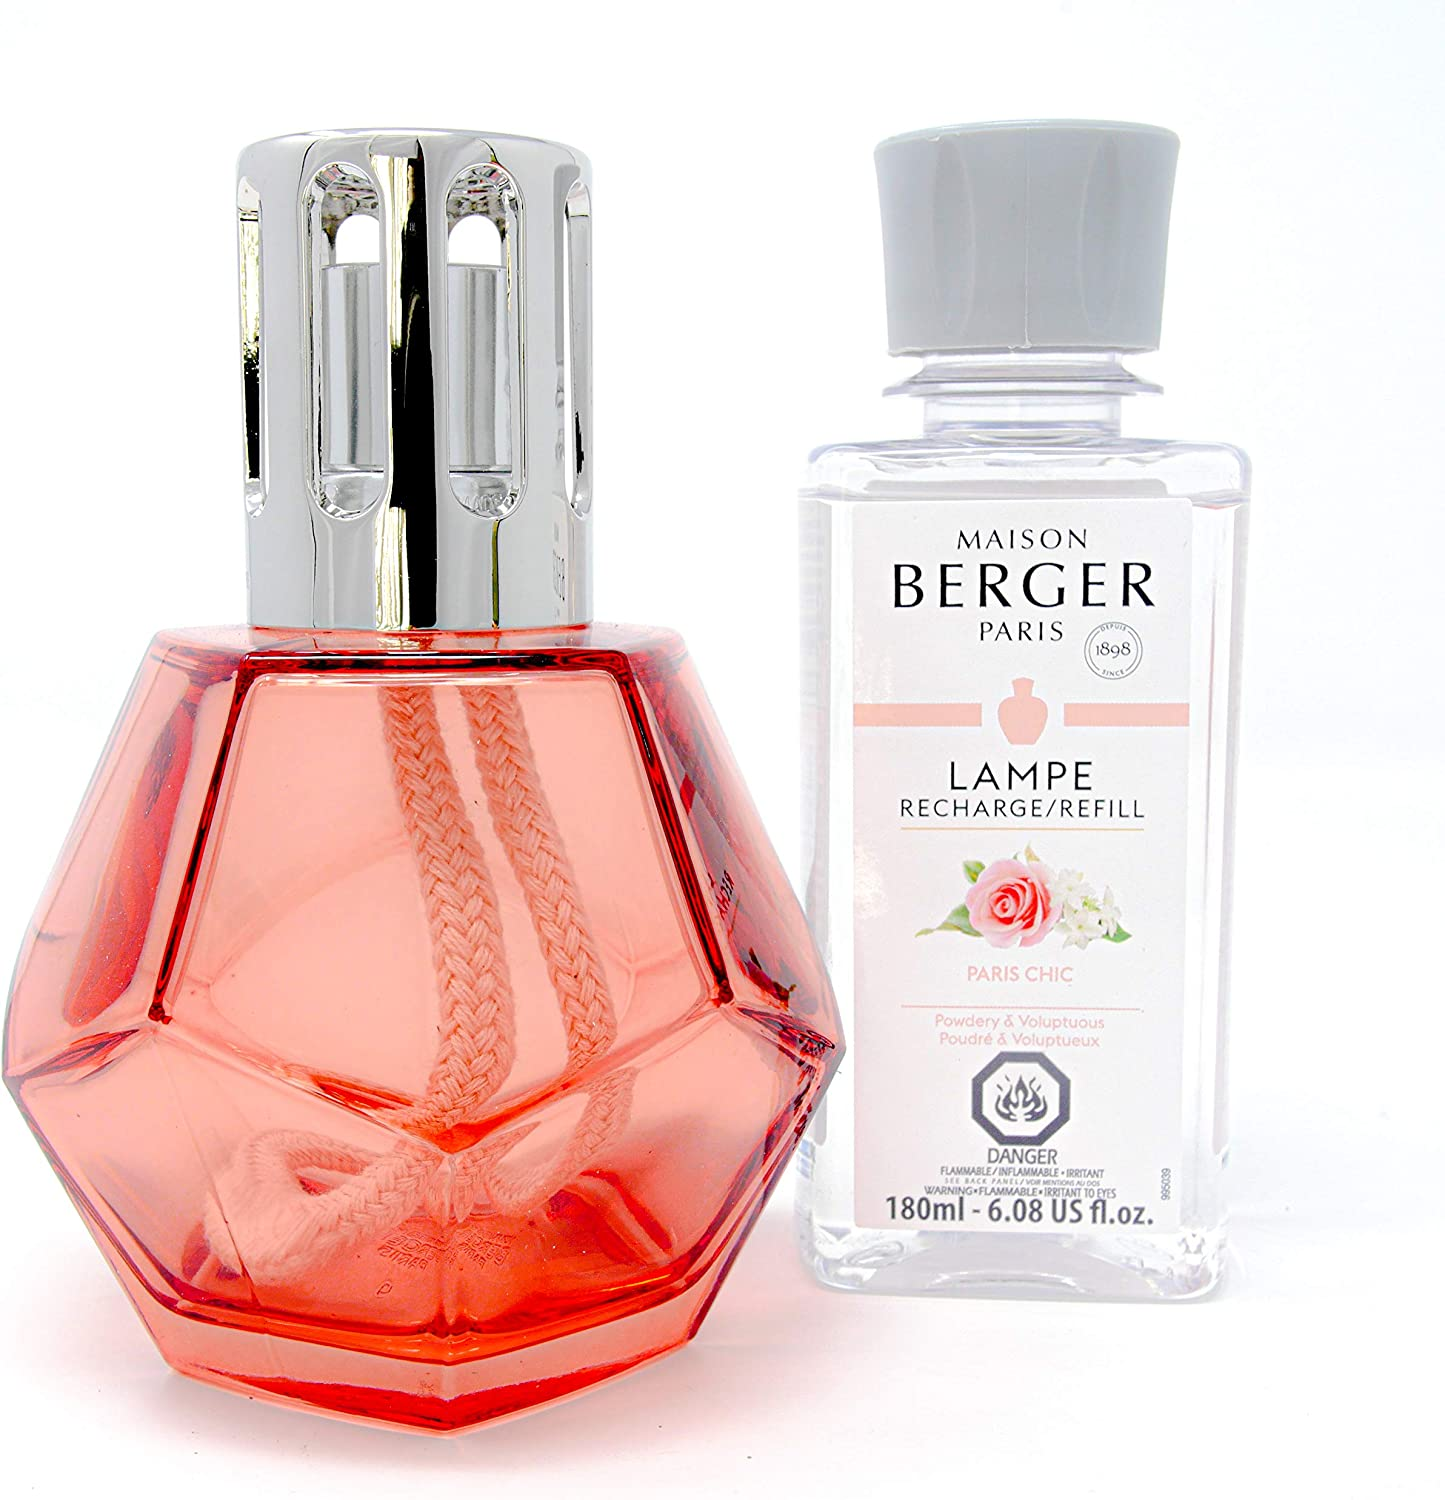 MAISON BERGER - Lampe Berger Gift Set Geometry - Home Fragrance Diffuser -  Perfuming - 9x9x9 inches - Made in France - Includes Fragrance 190